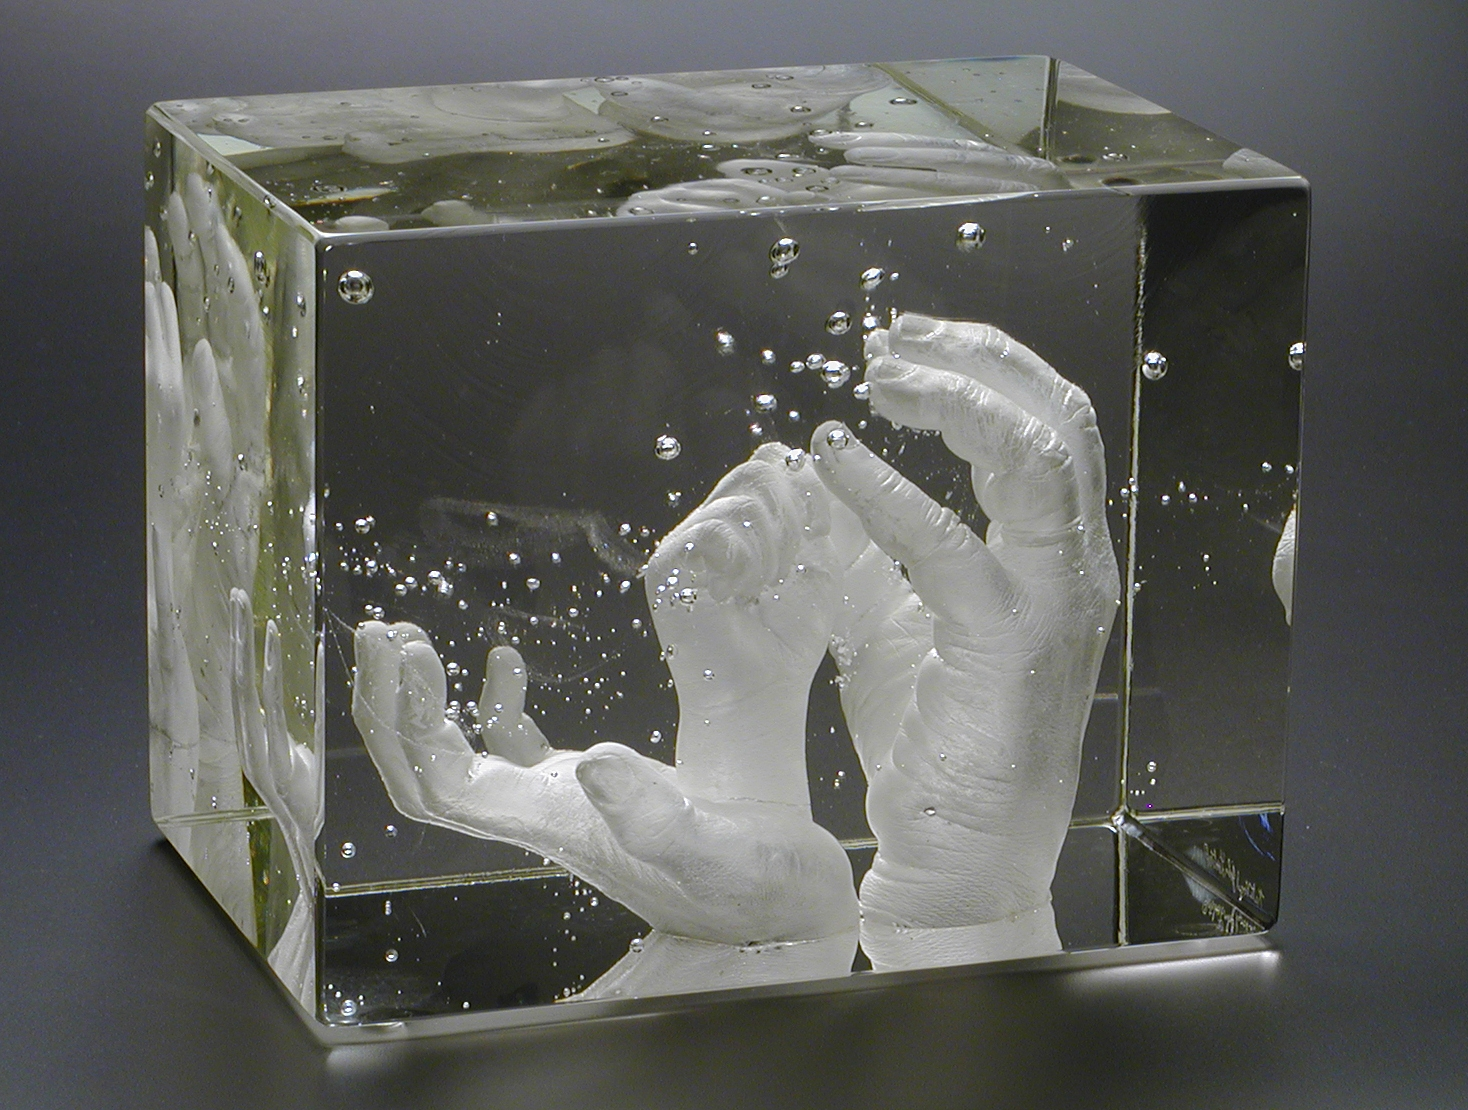 Alternate view of clear glass block containing three generations of hands.